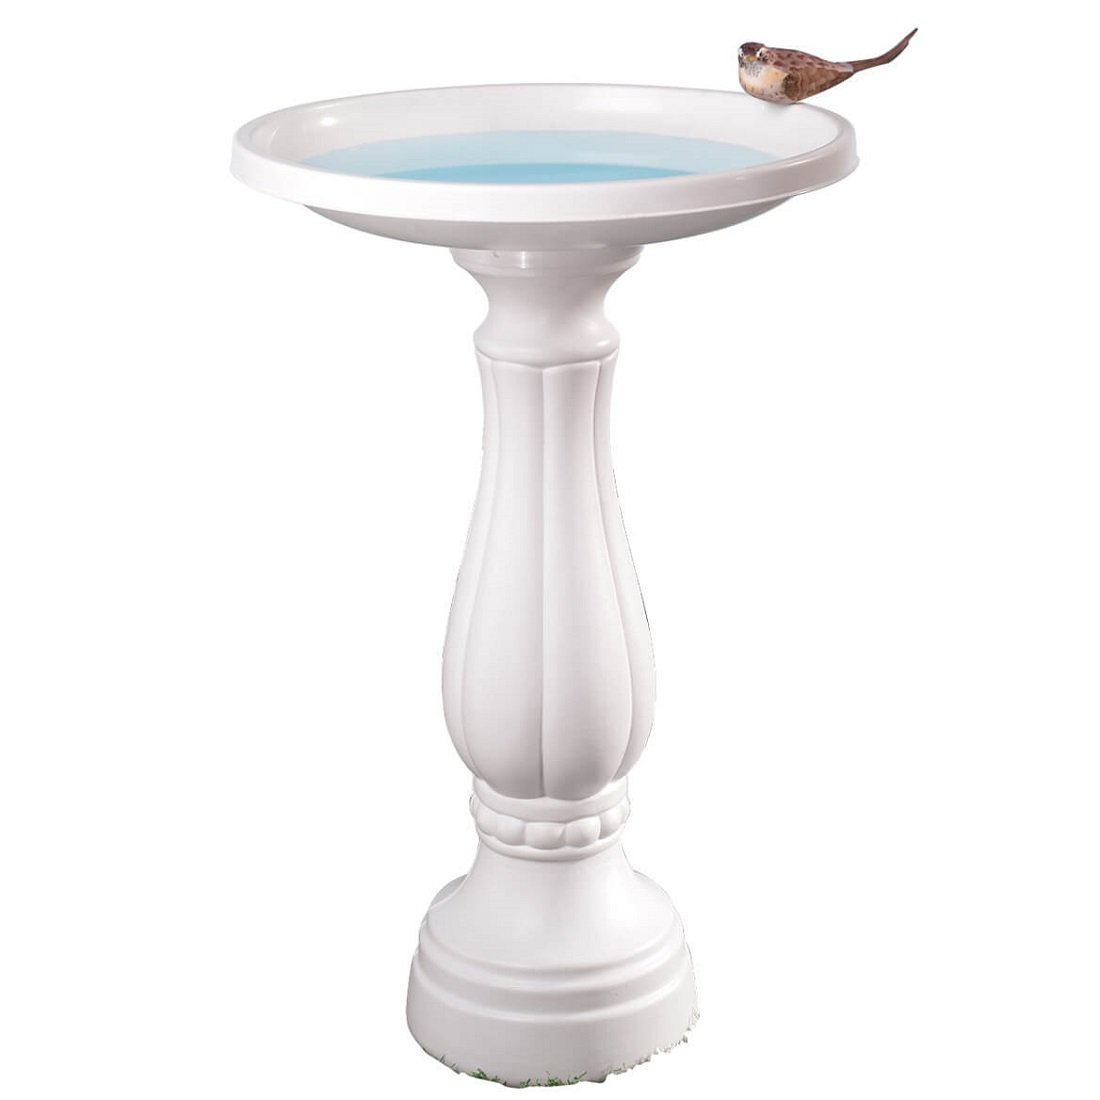 MS HOME Neoclassical Inspired Design Plastic White Bird Bath - Large, Easy to Assemble - 25''H x 16.75''dia.